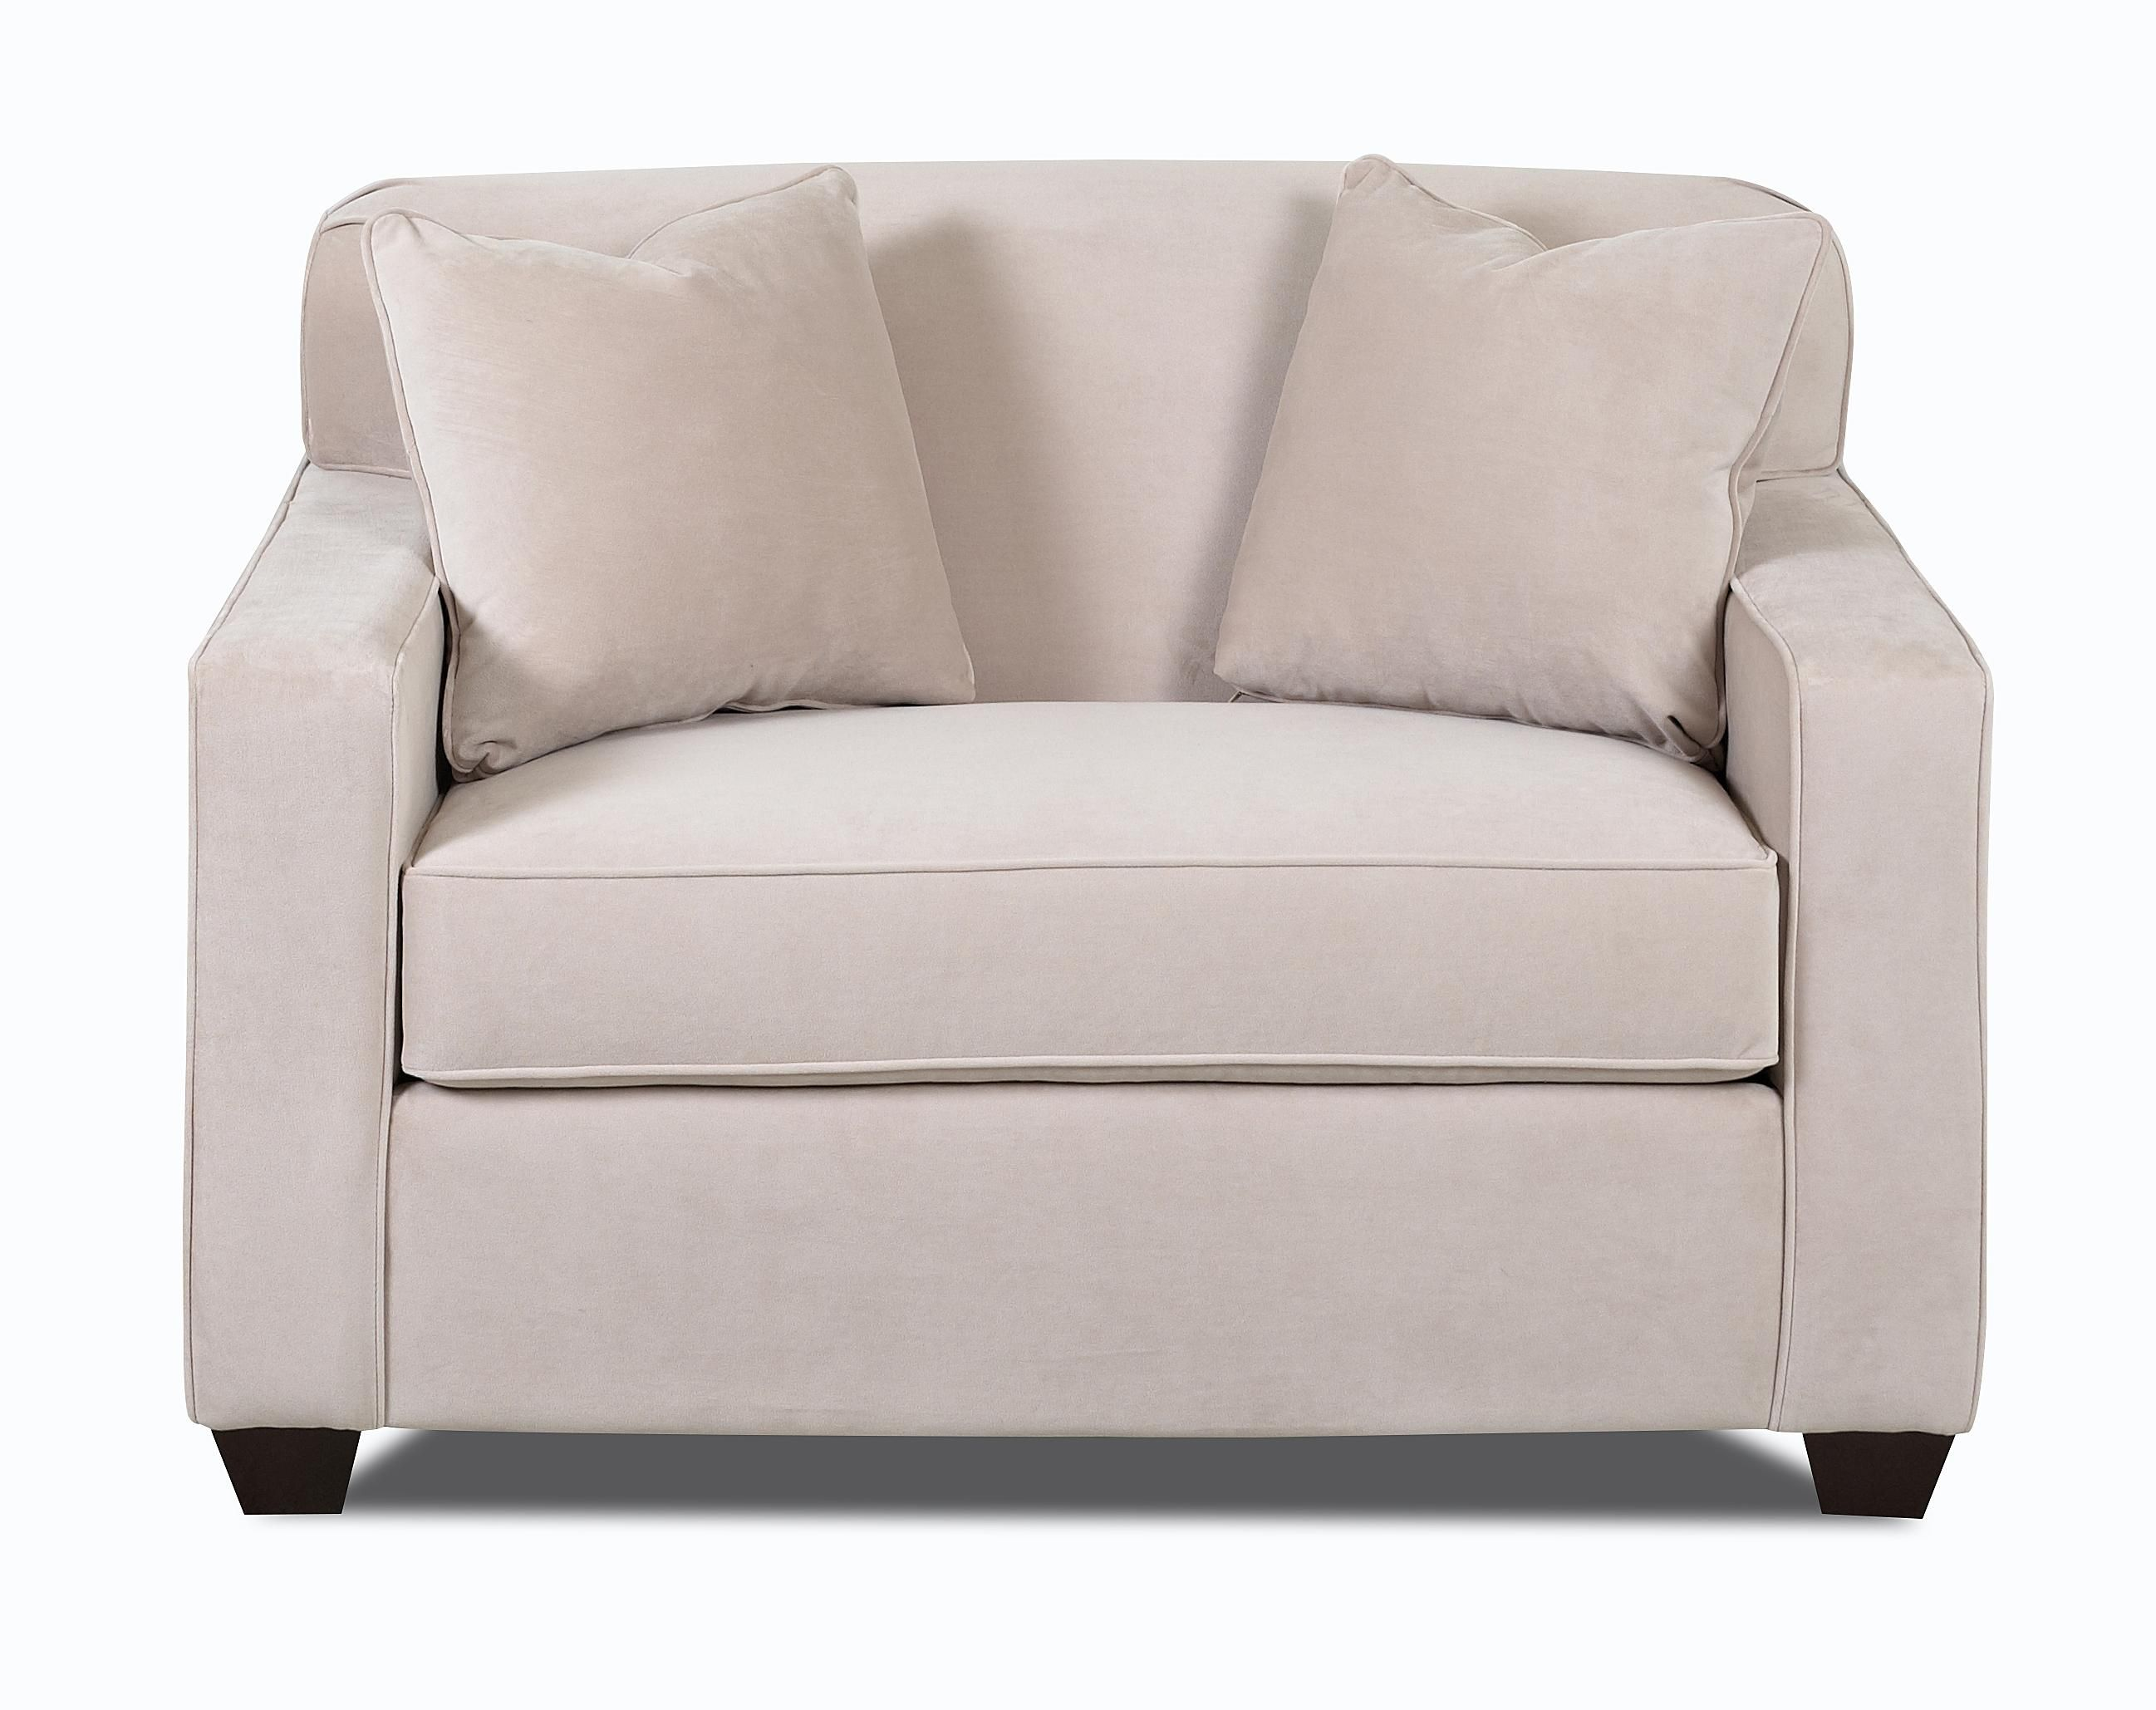 Gillis Dreamquest Chair Sleeper By Klaussner At Wayside Furniture Rolled Arm Chair Track Arm Chair Armchair